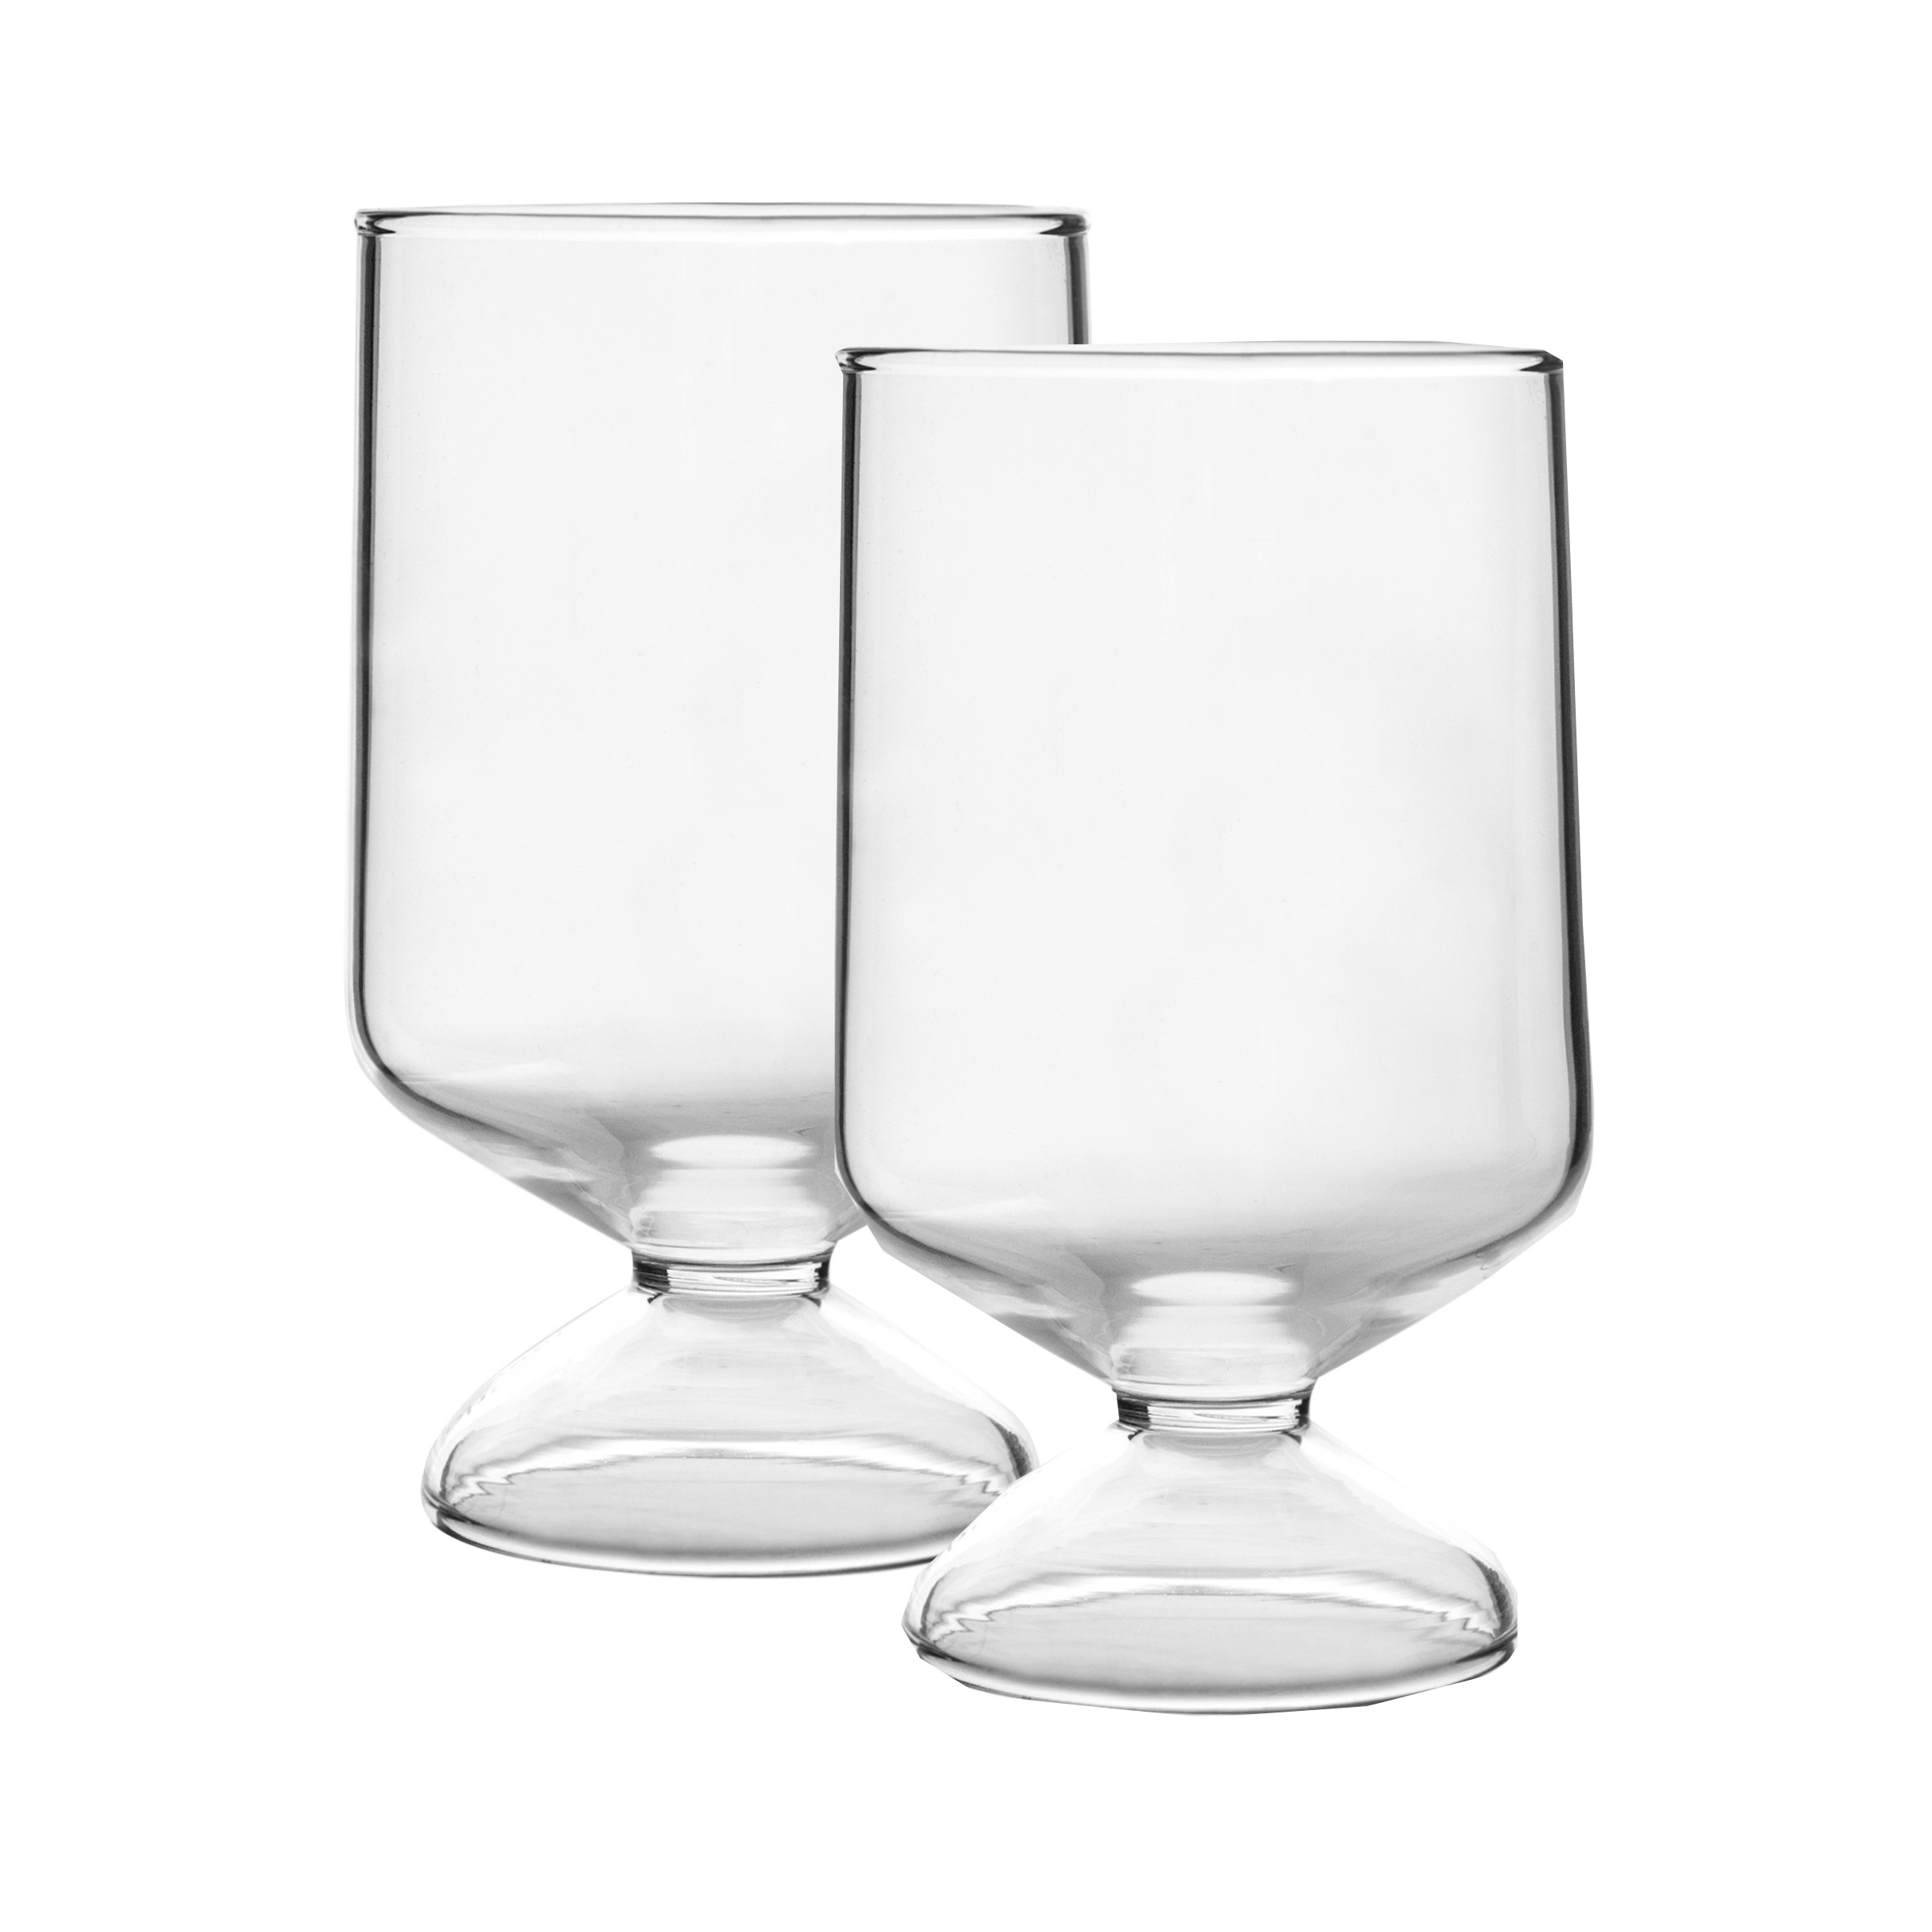 OLO glass - SET OF 2 PIECES